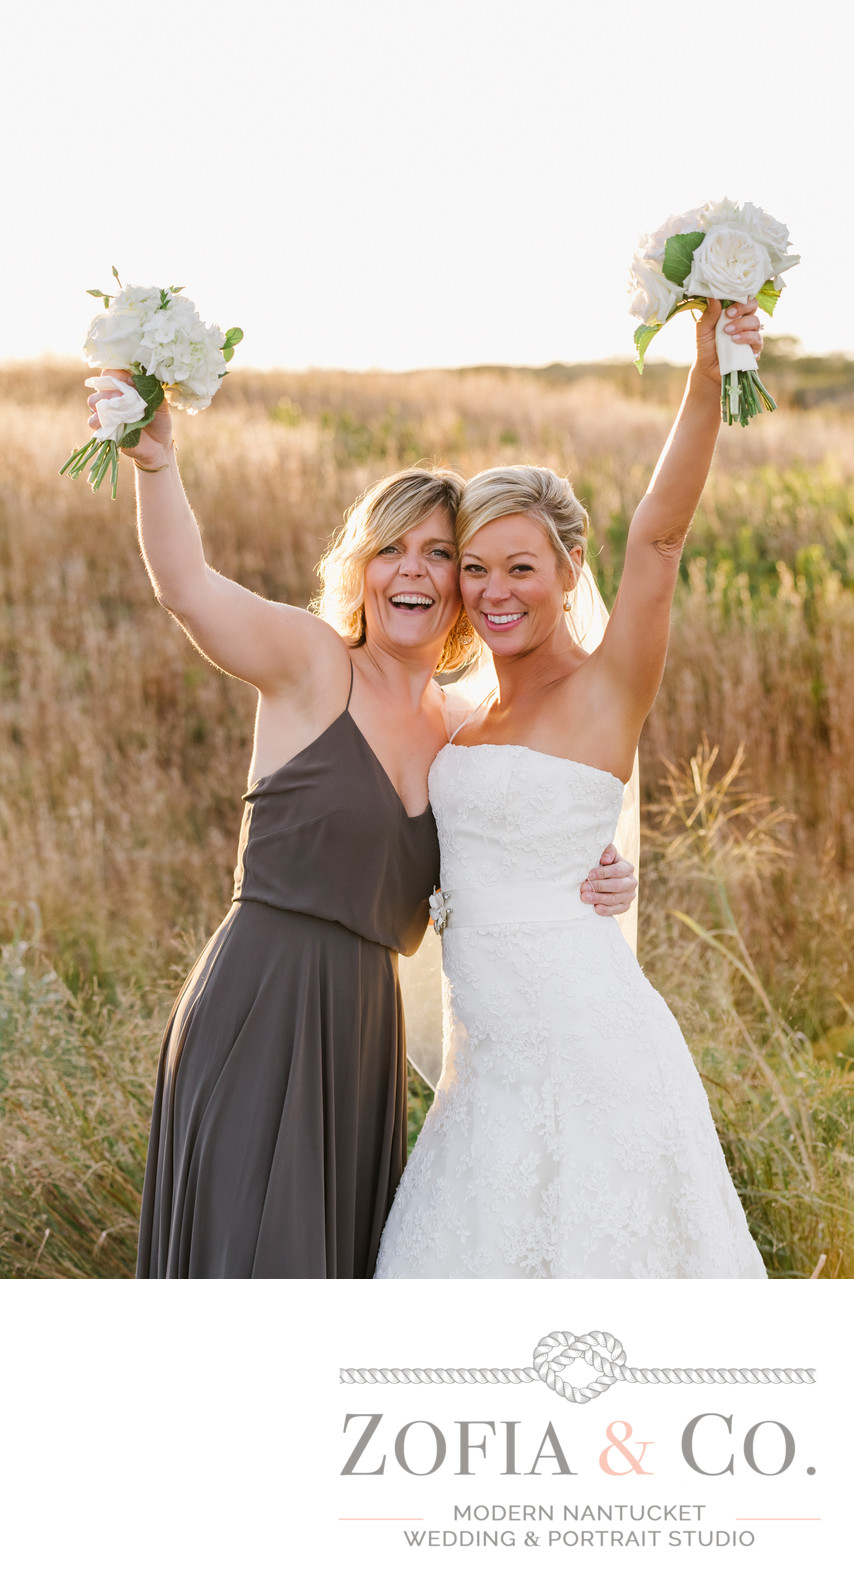 bestfriends nantucket bride and bridemaid in grey